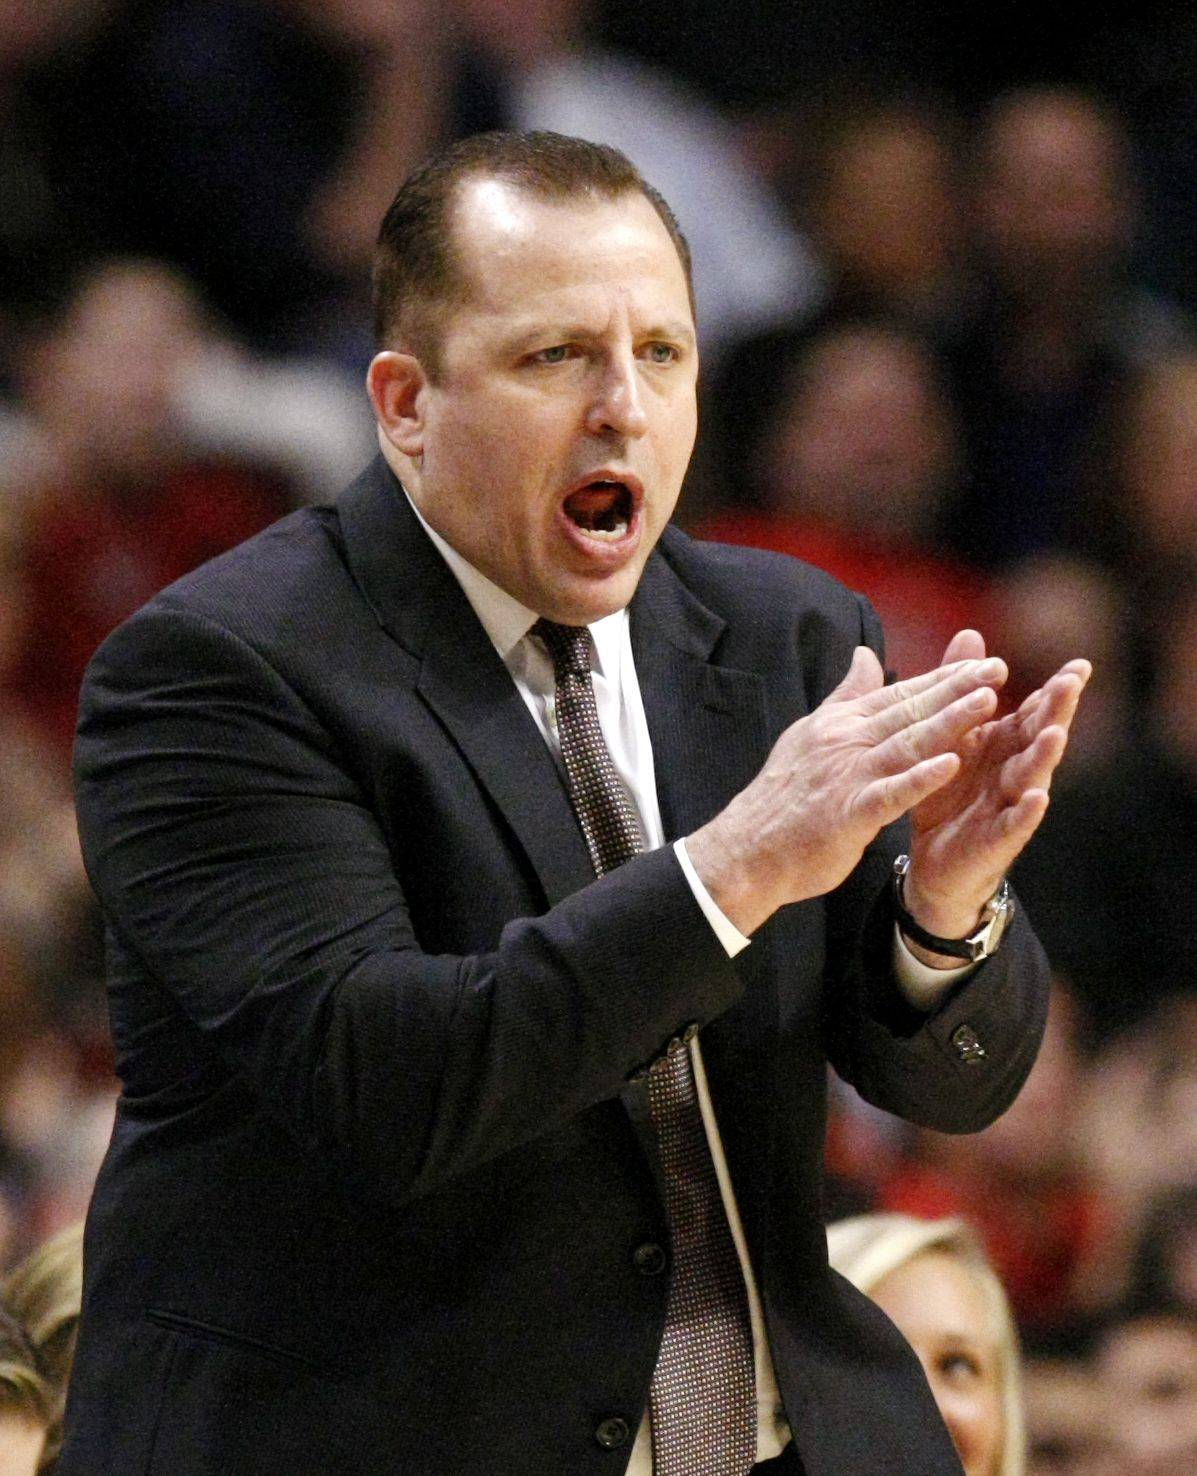 Bulls head coach Tom Thibodeau encourages his team during a game against the Atlanta Hawks.